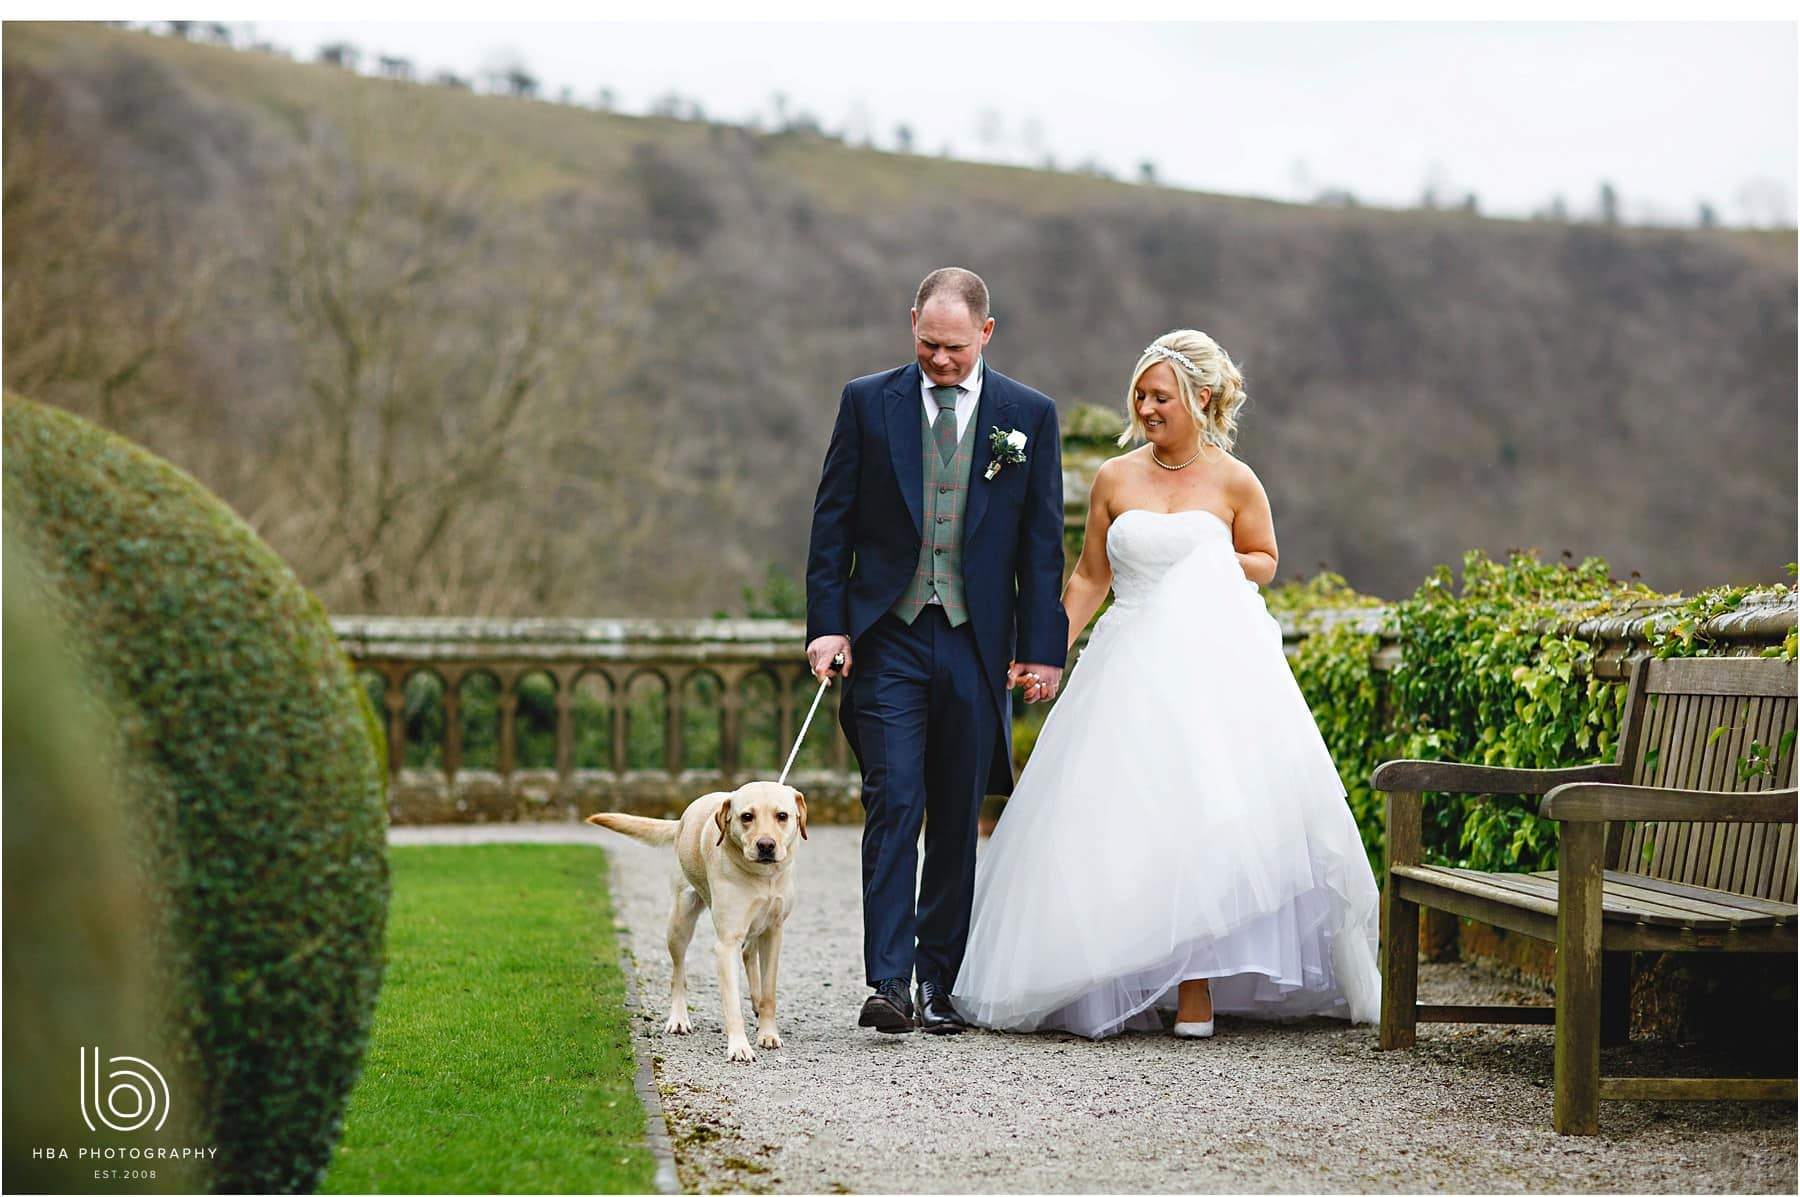 The bride and groom walking the dog at Cressbrook Hall